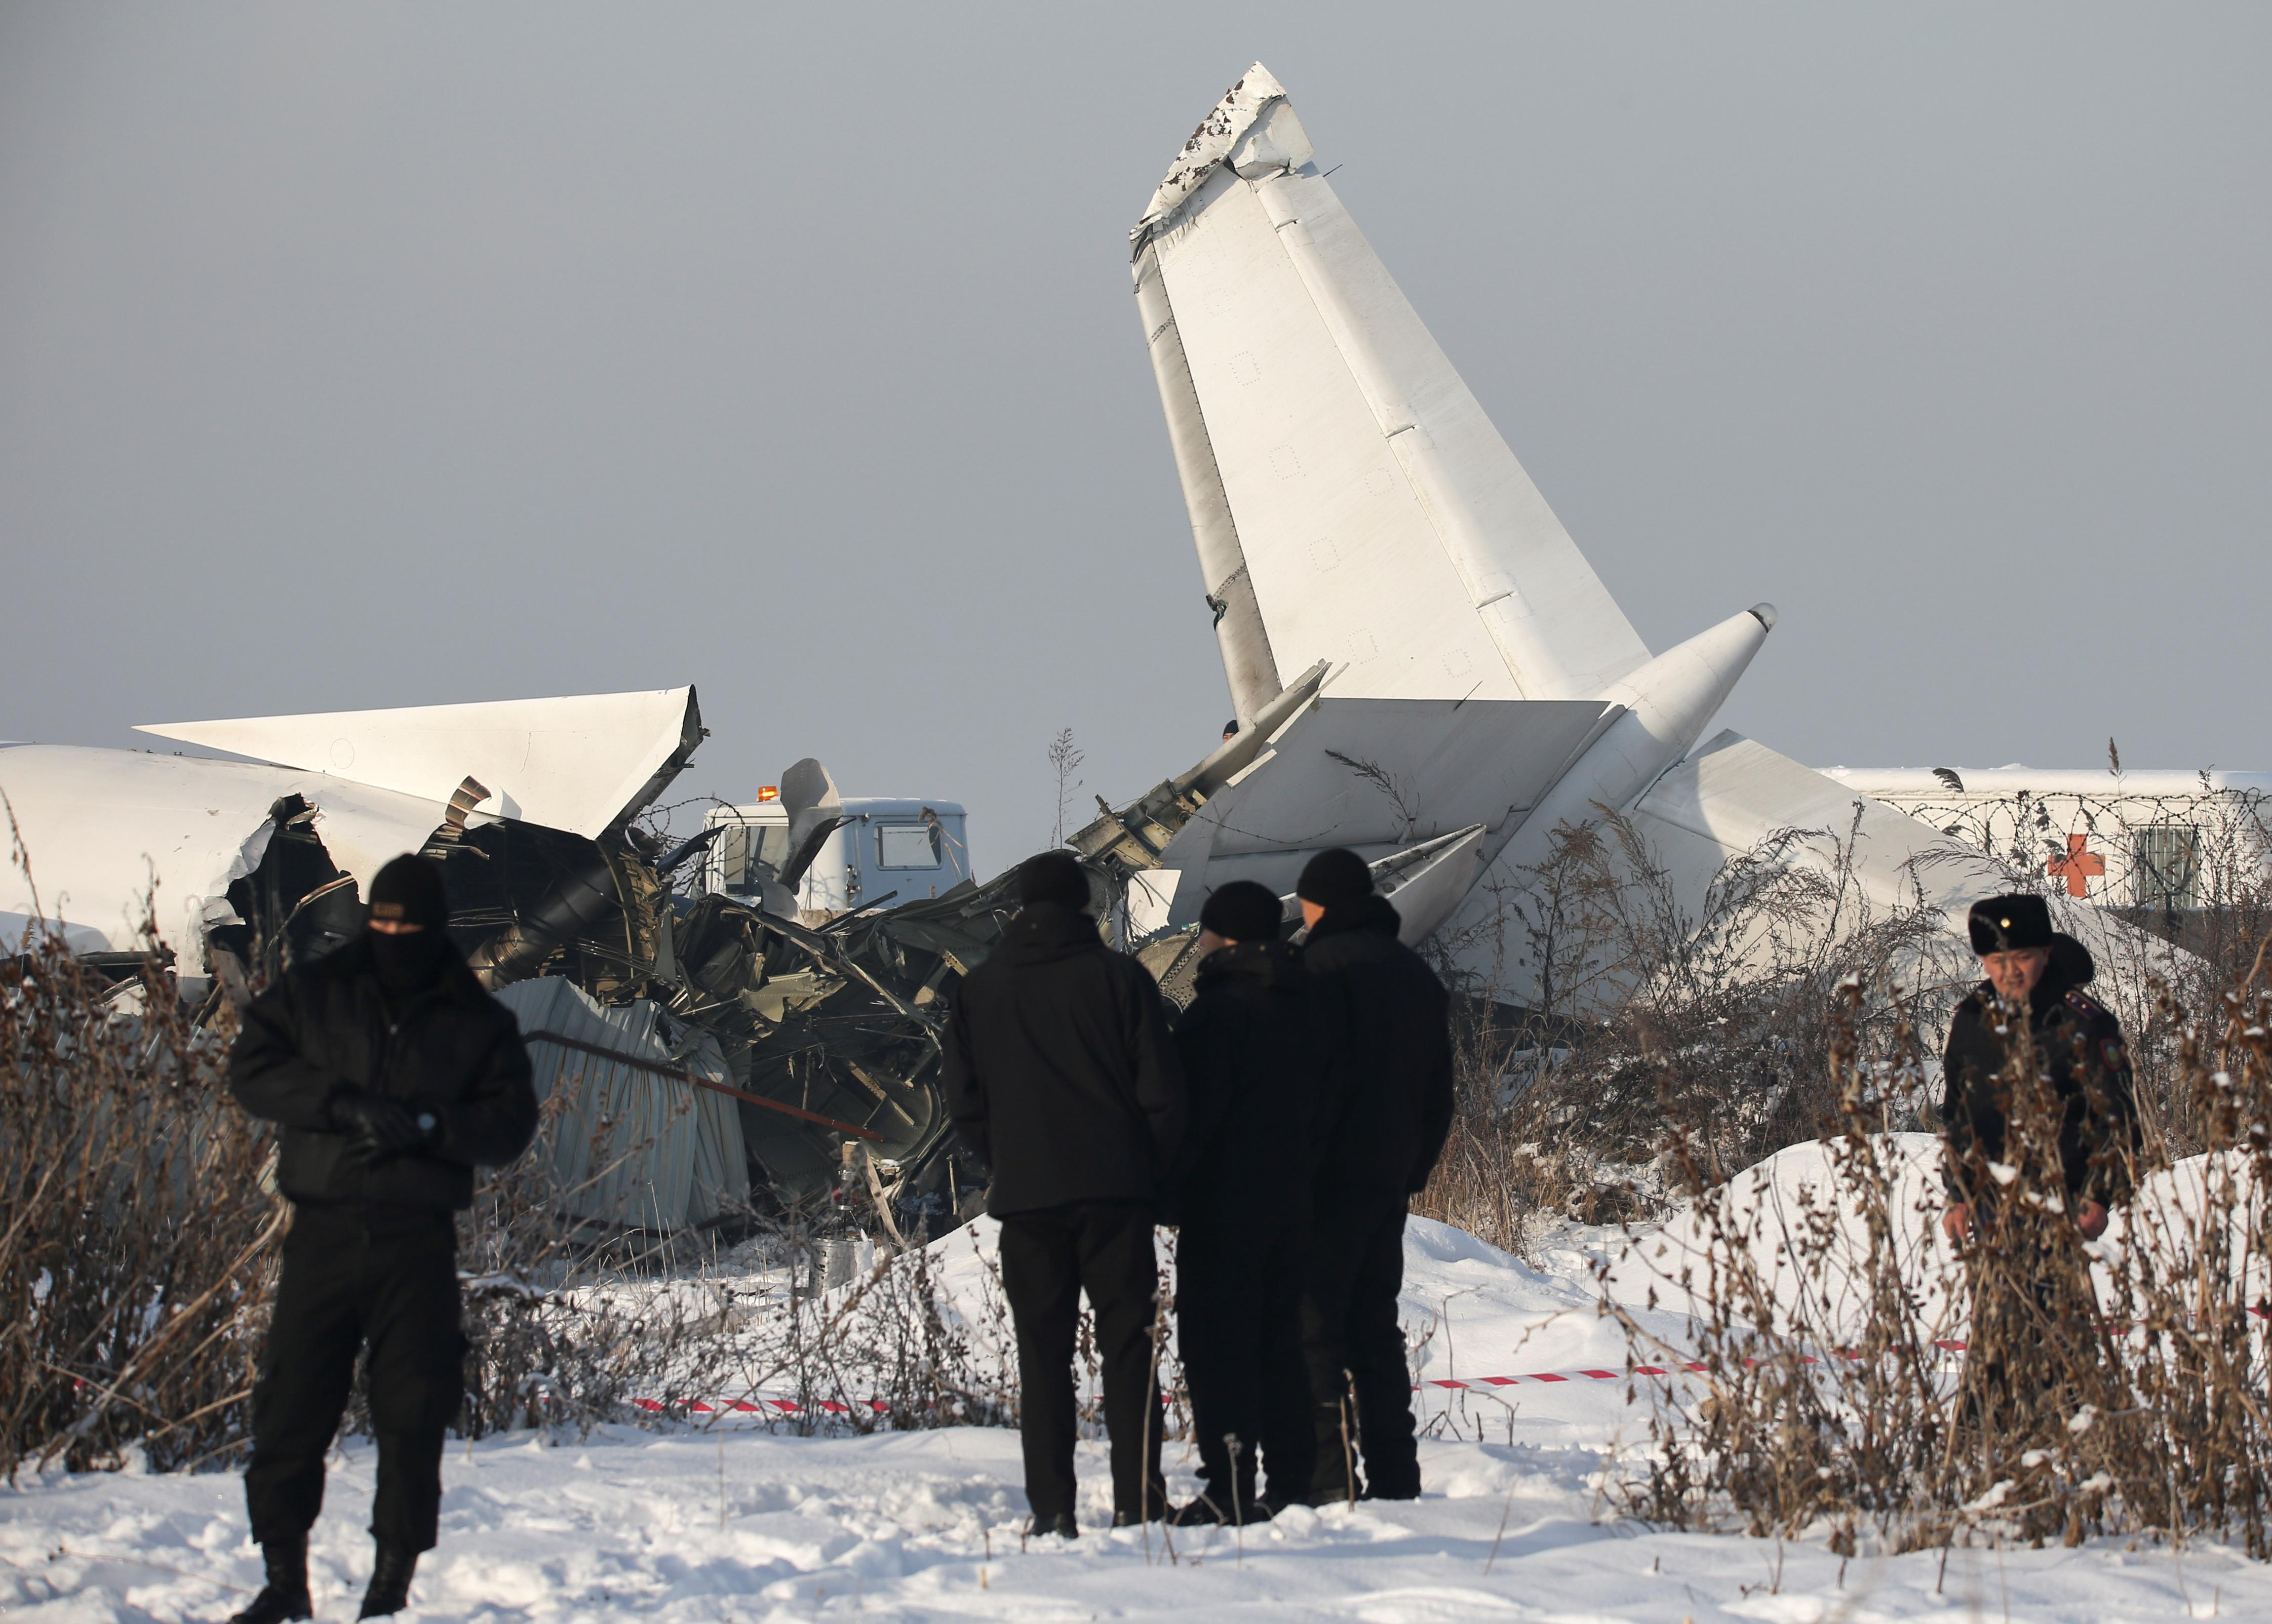 Emergency and security personnel are seen at the site of a plane crash near Almaty, Kazakhstan, December 27, 2019. REUTERS/Pavel Mikheyev